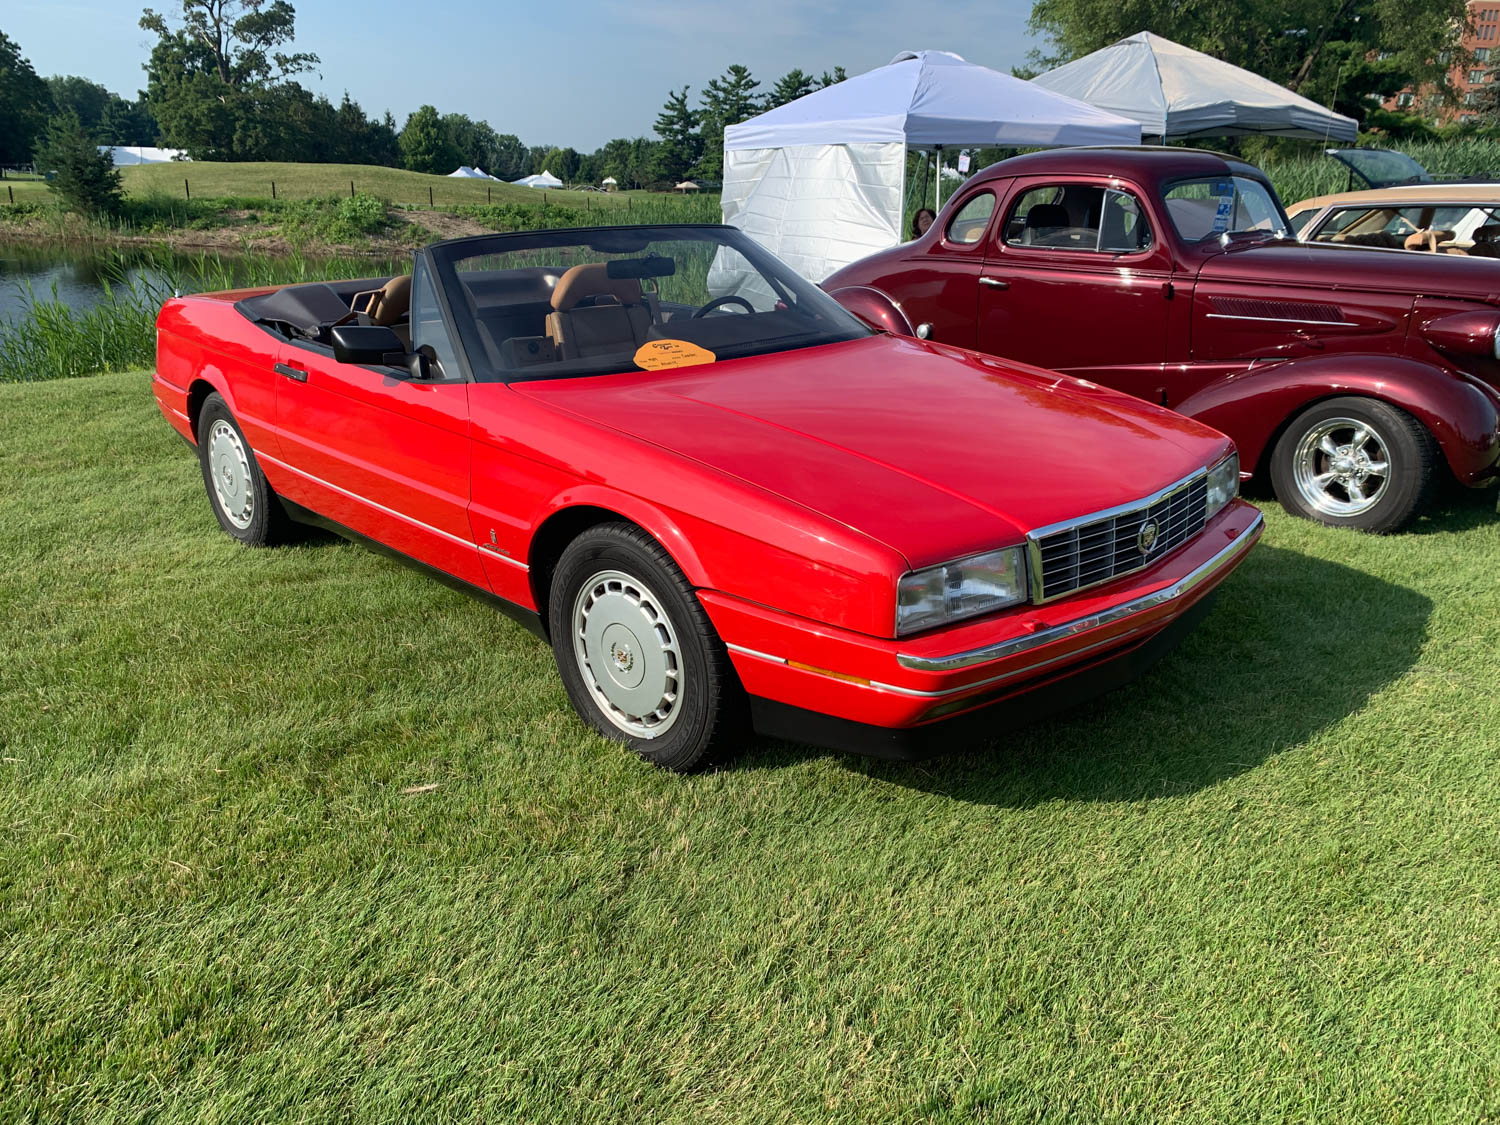 After winning Worst of Show at the 2019 Michigan Concours d'Lemons the owner of this 1992 Allanté wished to remain anonymous, lest he get kicked out of the Allanté Owners Club.